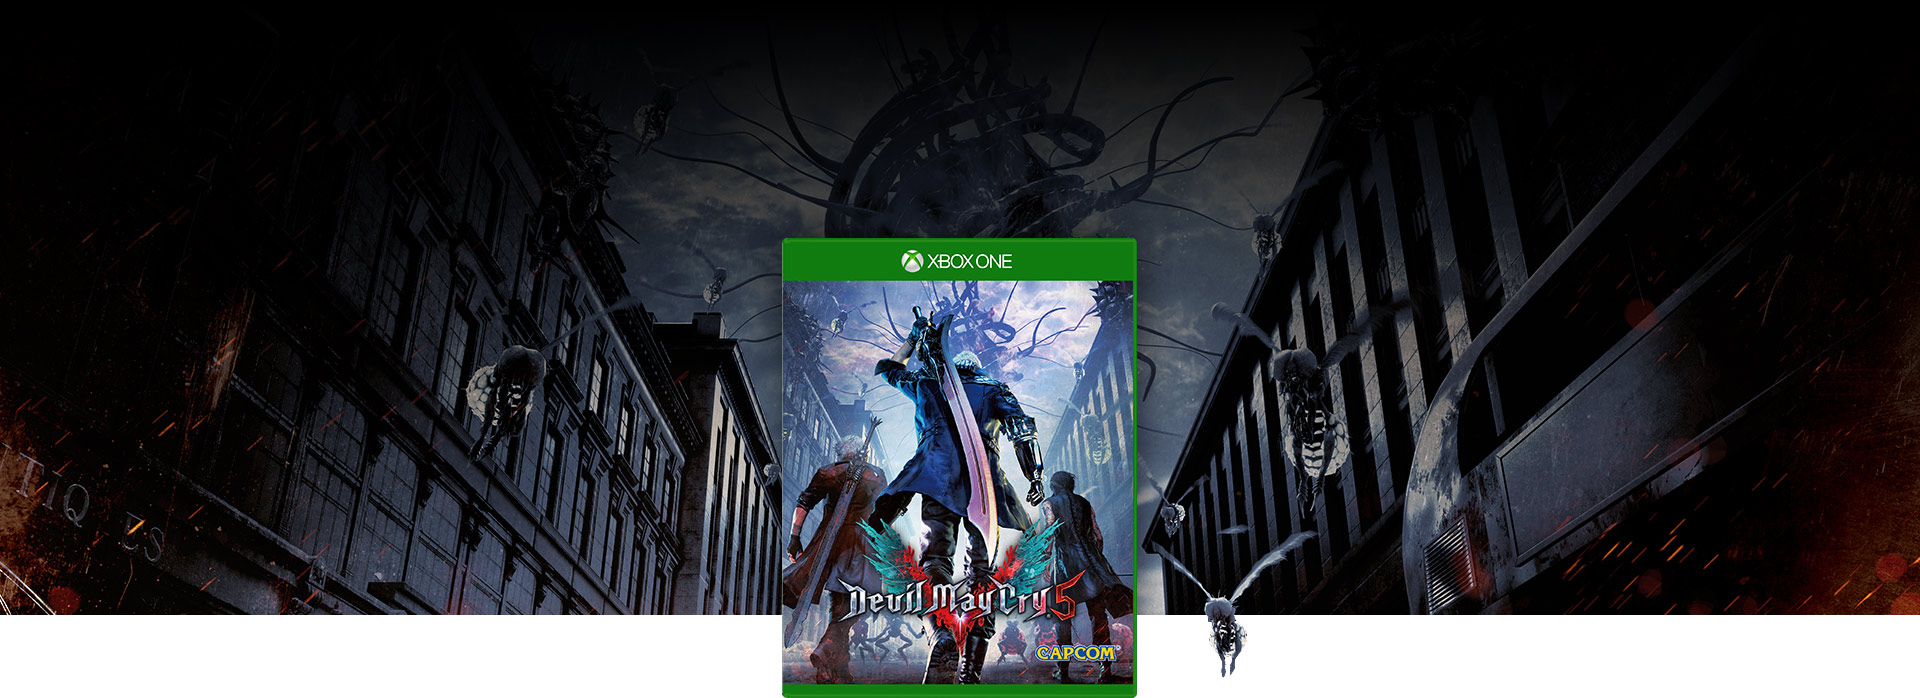 Devil May Cry 5 boxshot, insects fly around in a deserted city